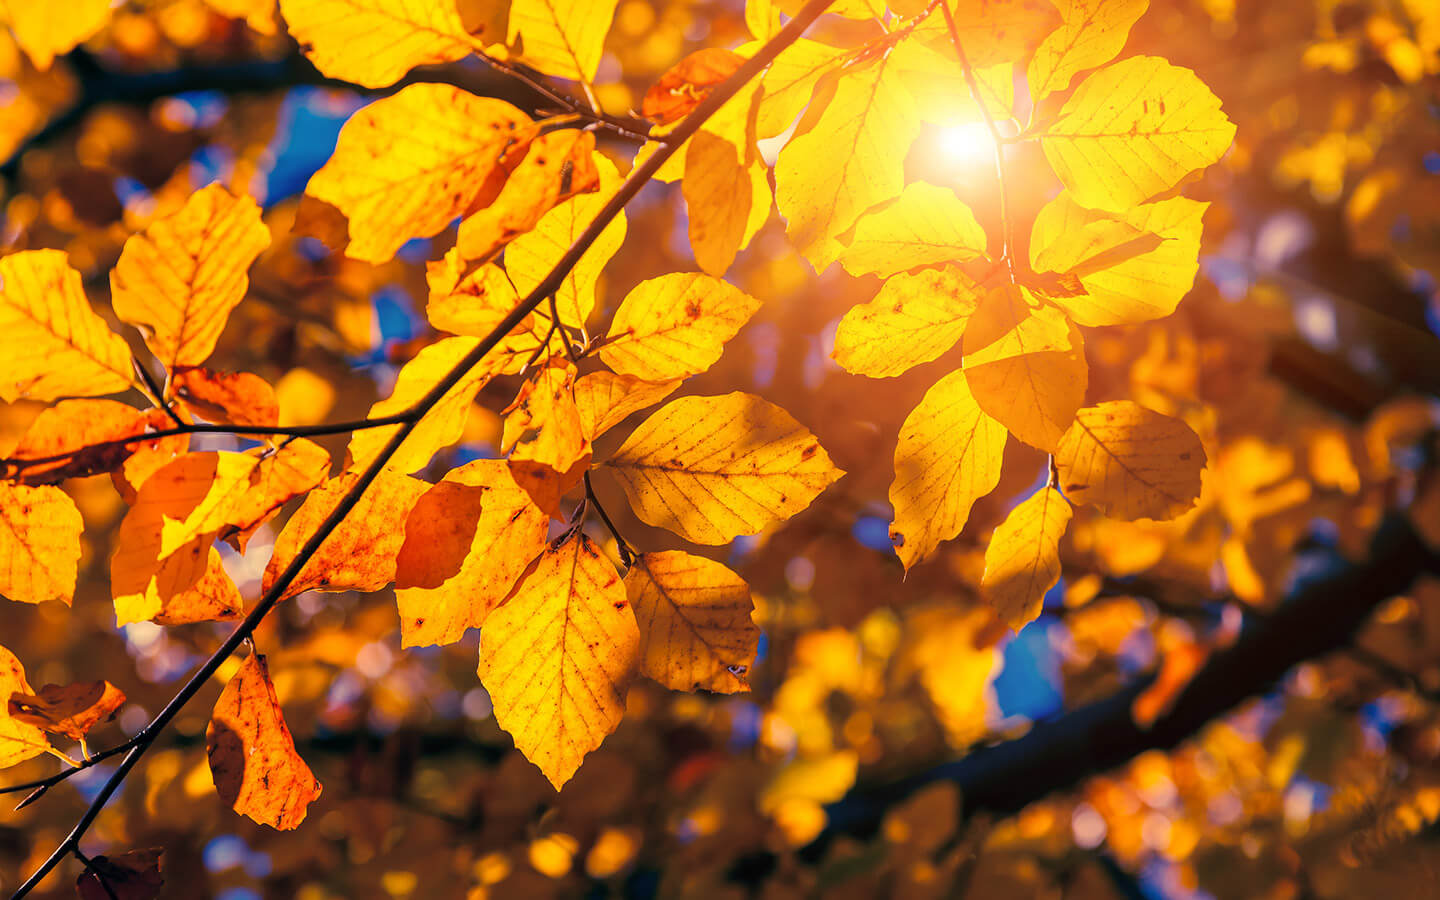 Fall leaves in the sunlight